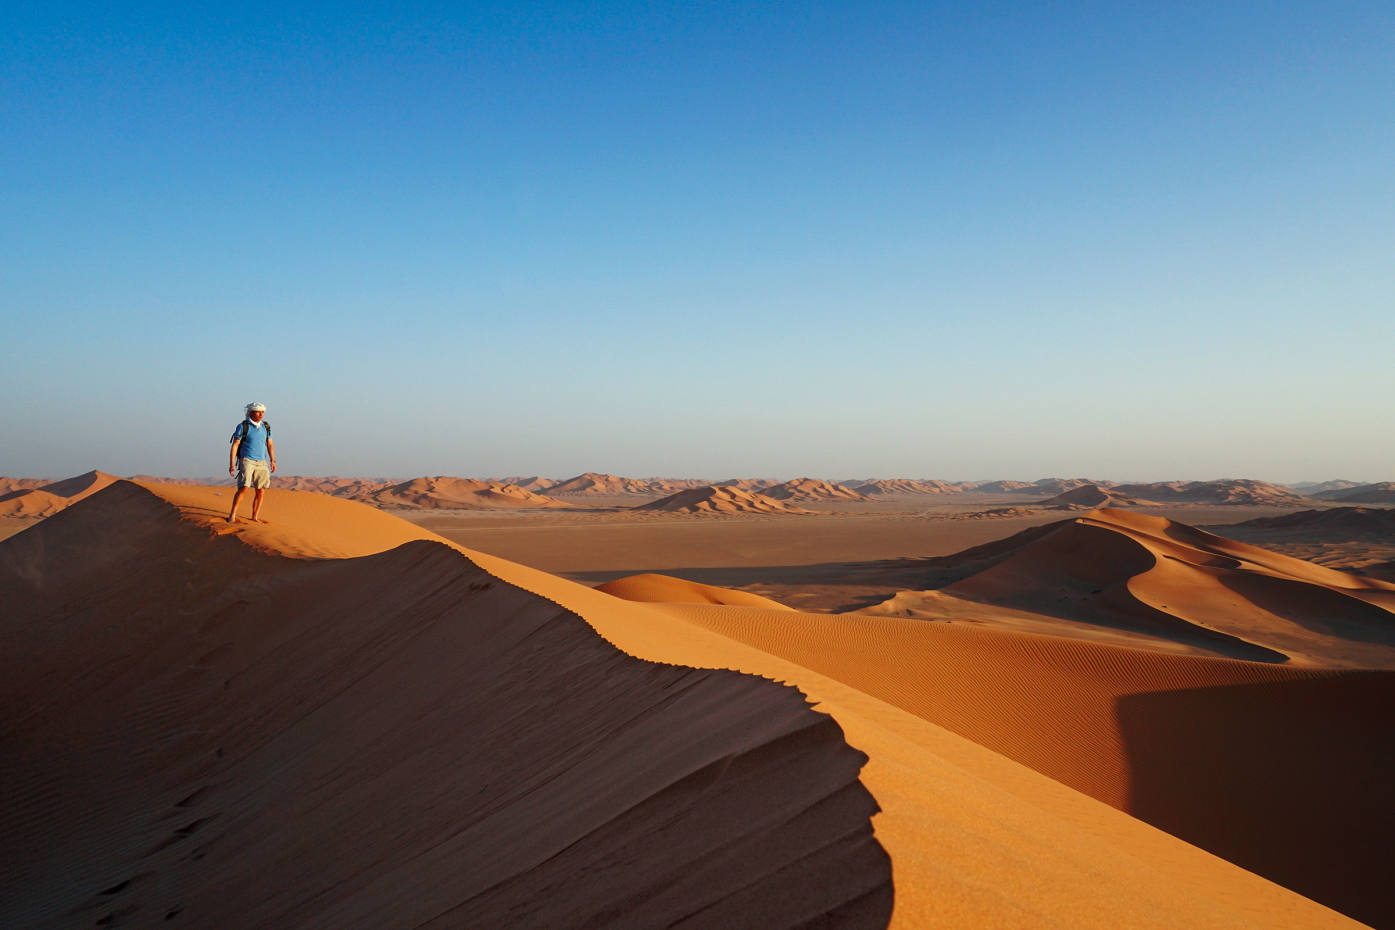 The author atop a 200m-high dune in Oman's Empty Quarter